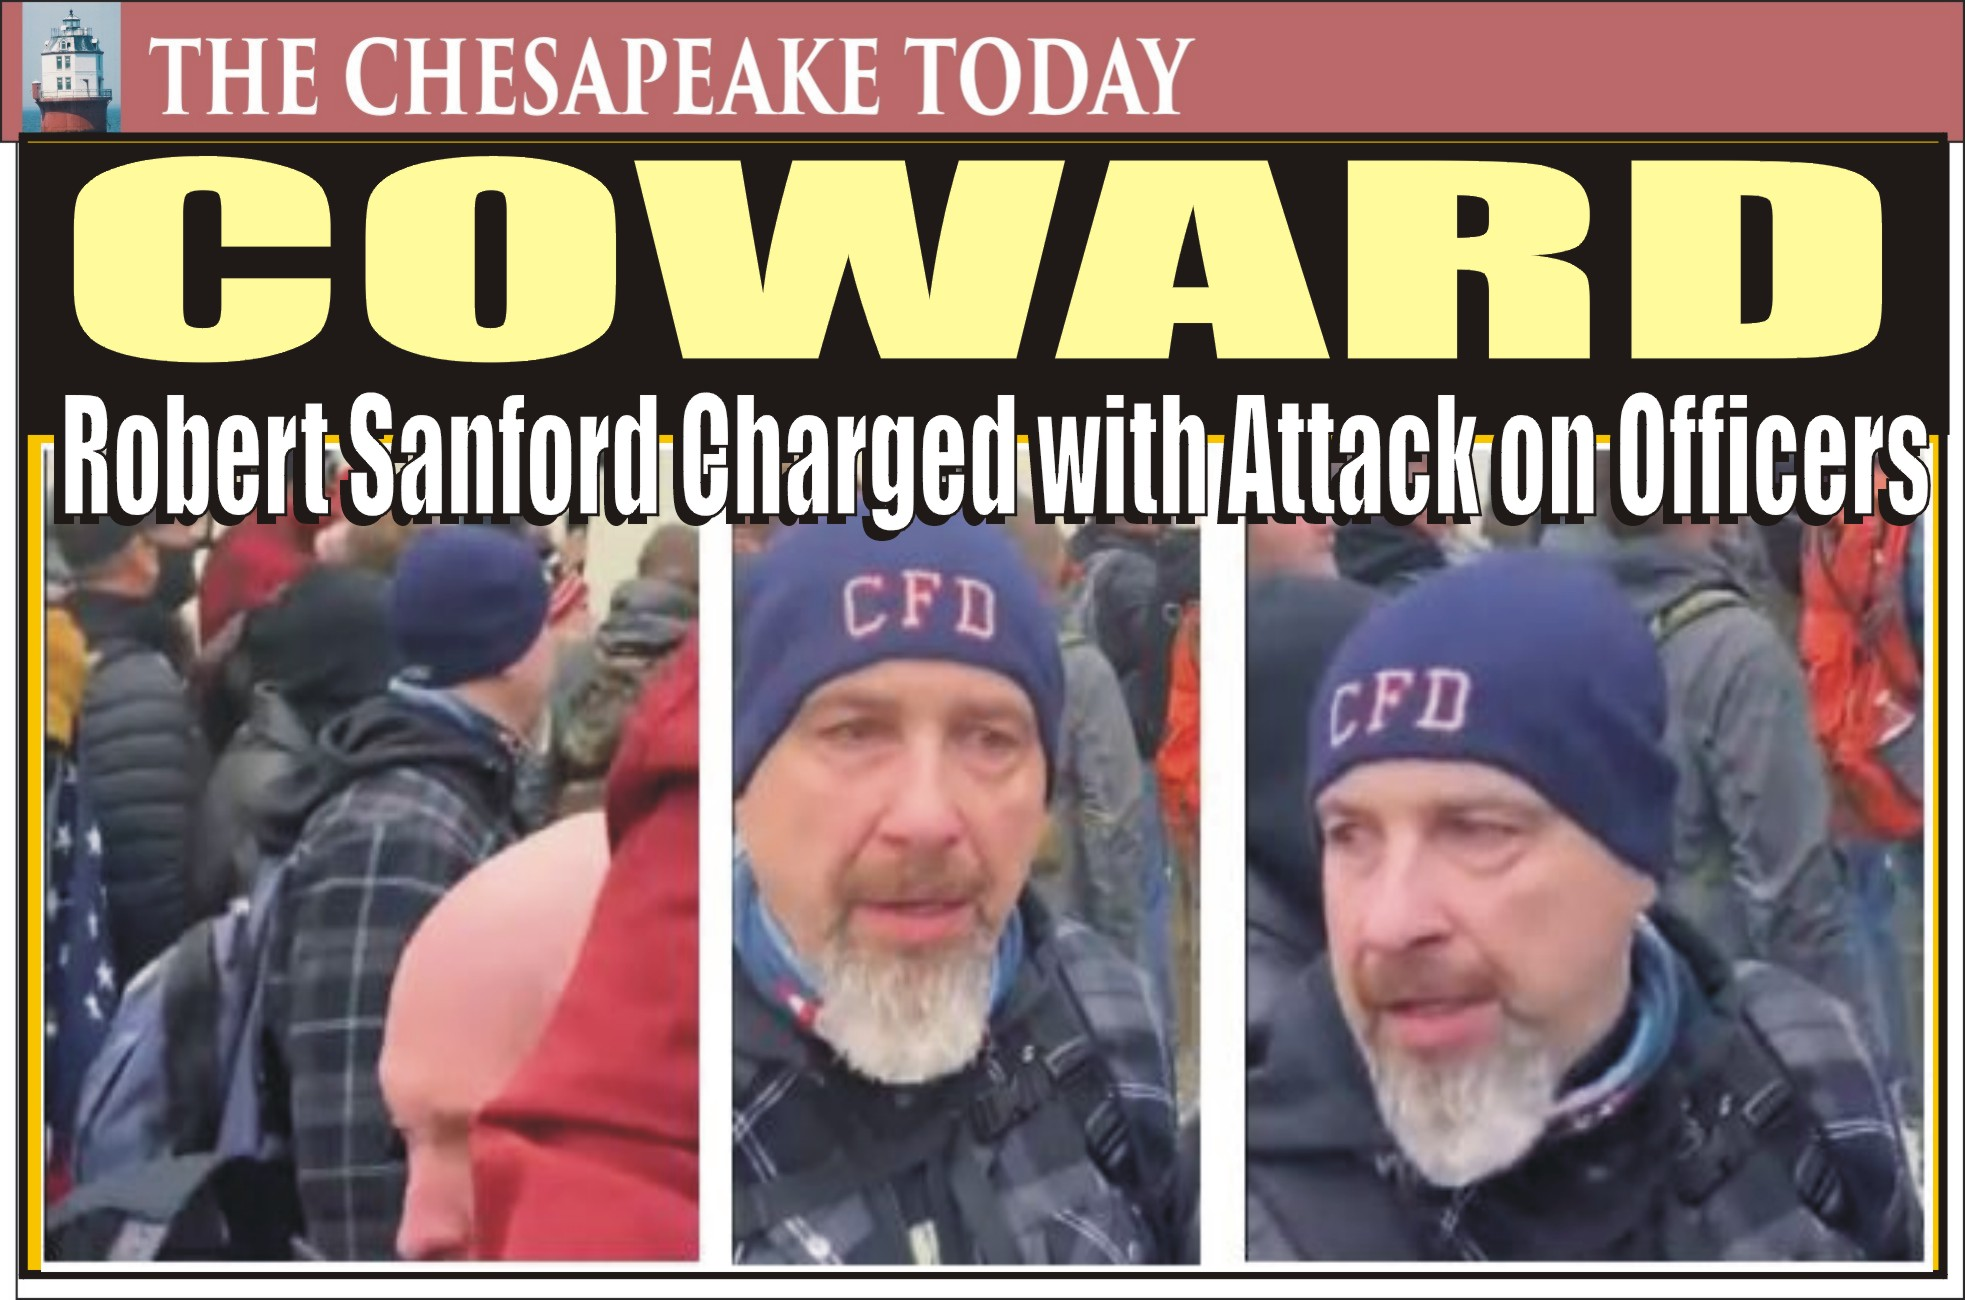 CAPITOL RIOT: Two Virginia cops hit with federal charges of violent entry into Capitol;  retired Chester PA firefighter Robert Sanford jailed for assaulting officers with a fire extinguisher